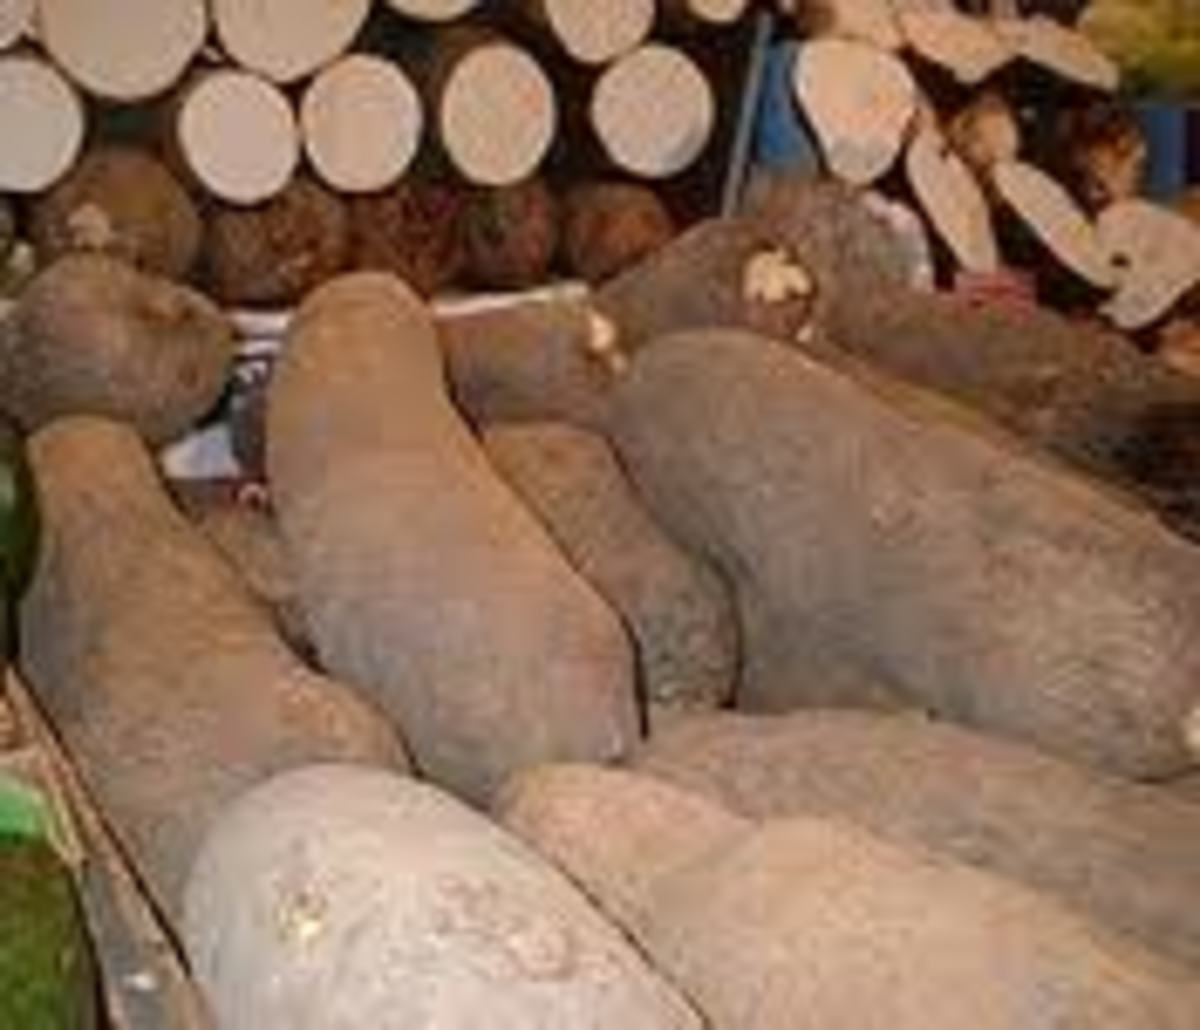 A Variety of Yams, very versatile and easily available